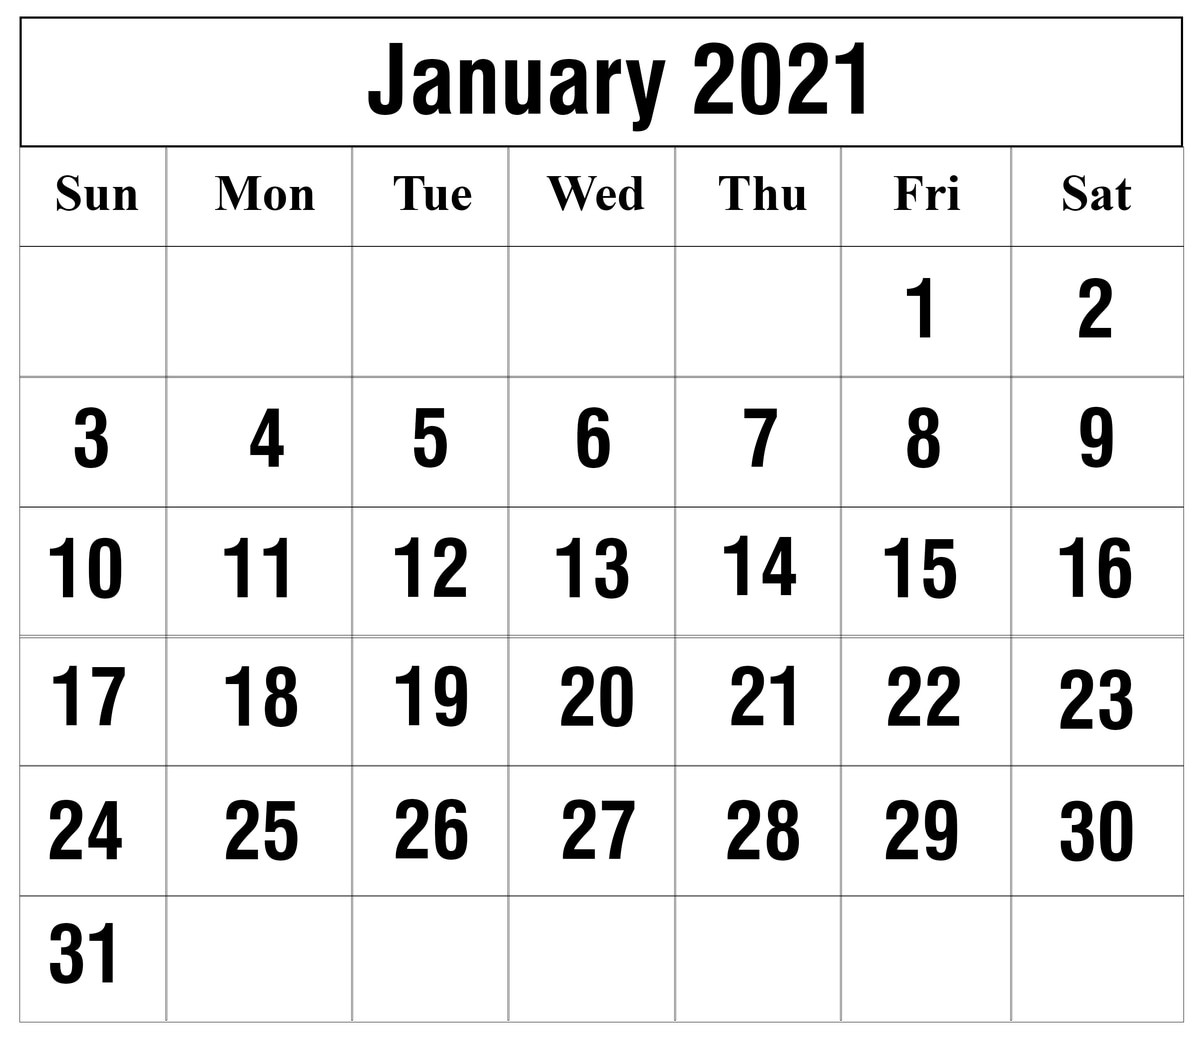 Free January 2021 Printable Calendar Template In Pdf, Excel  Calendar 2021 With Gregorian Dates